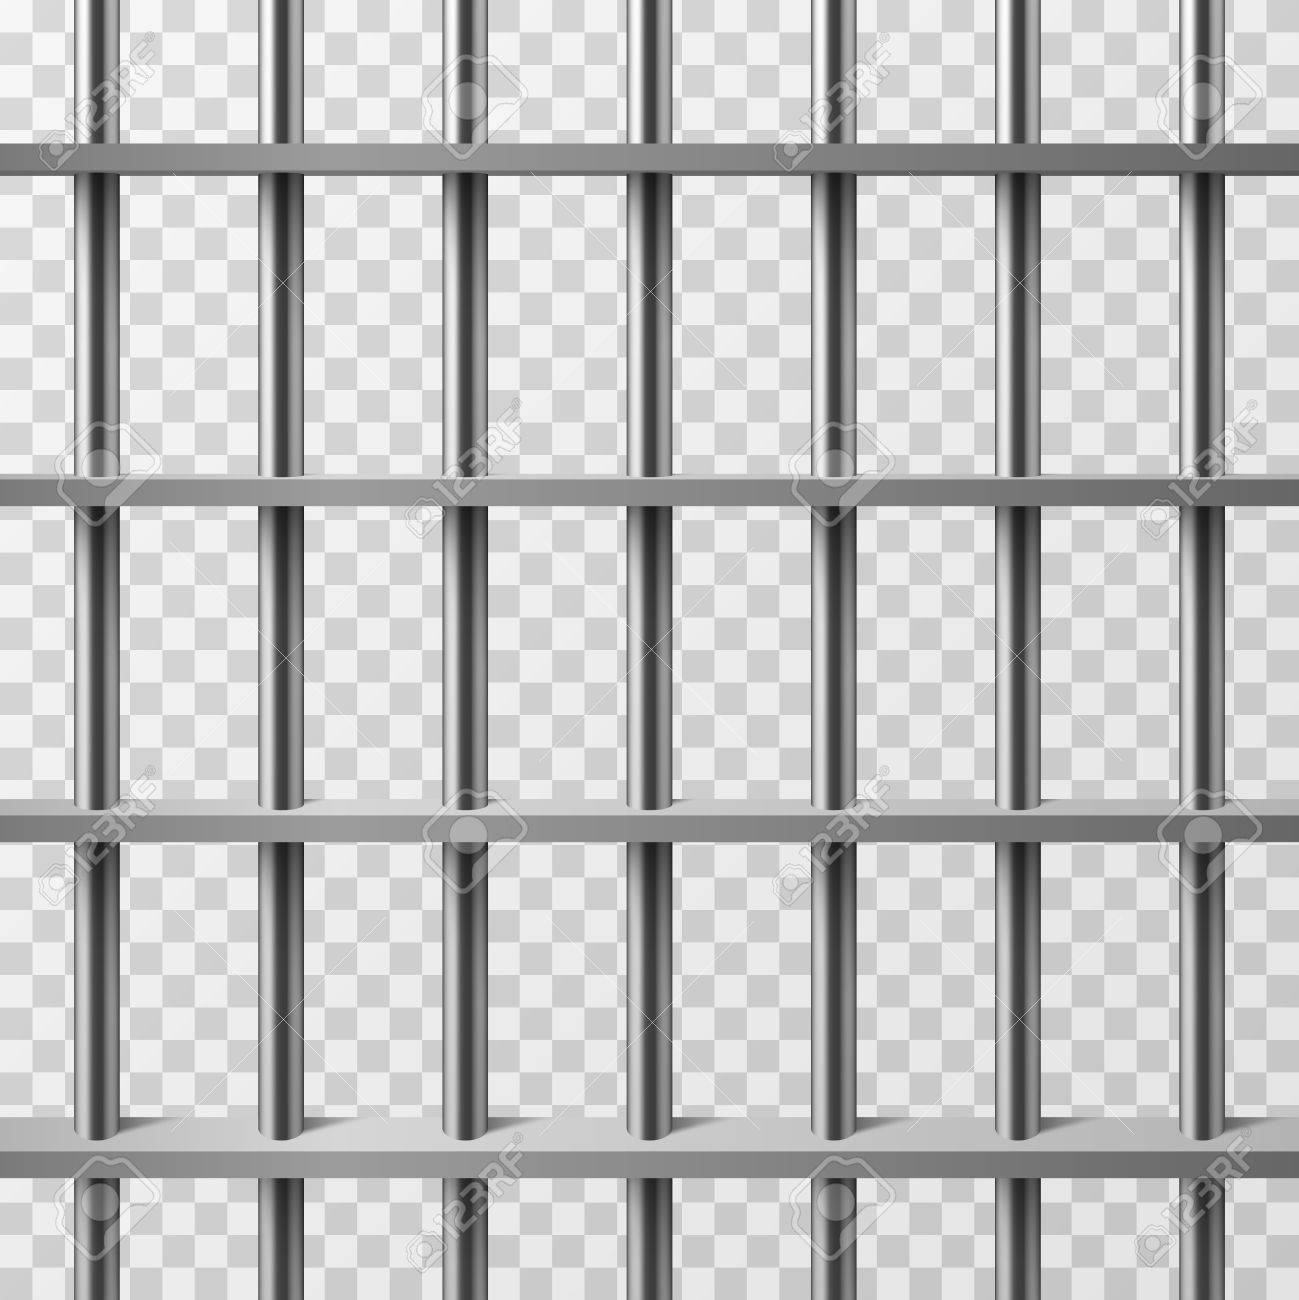 jail cell bars isolated prison vector background illustration